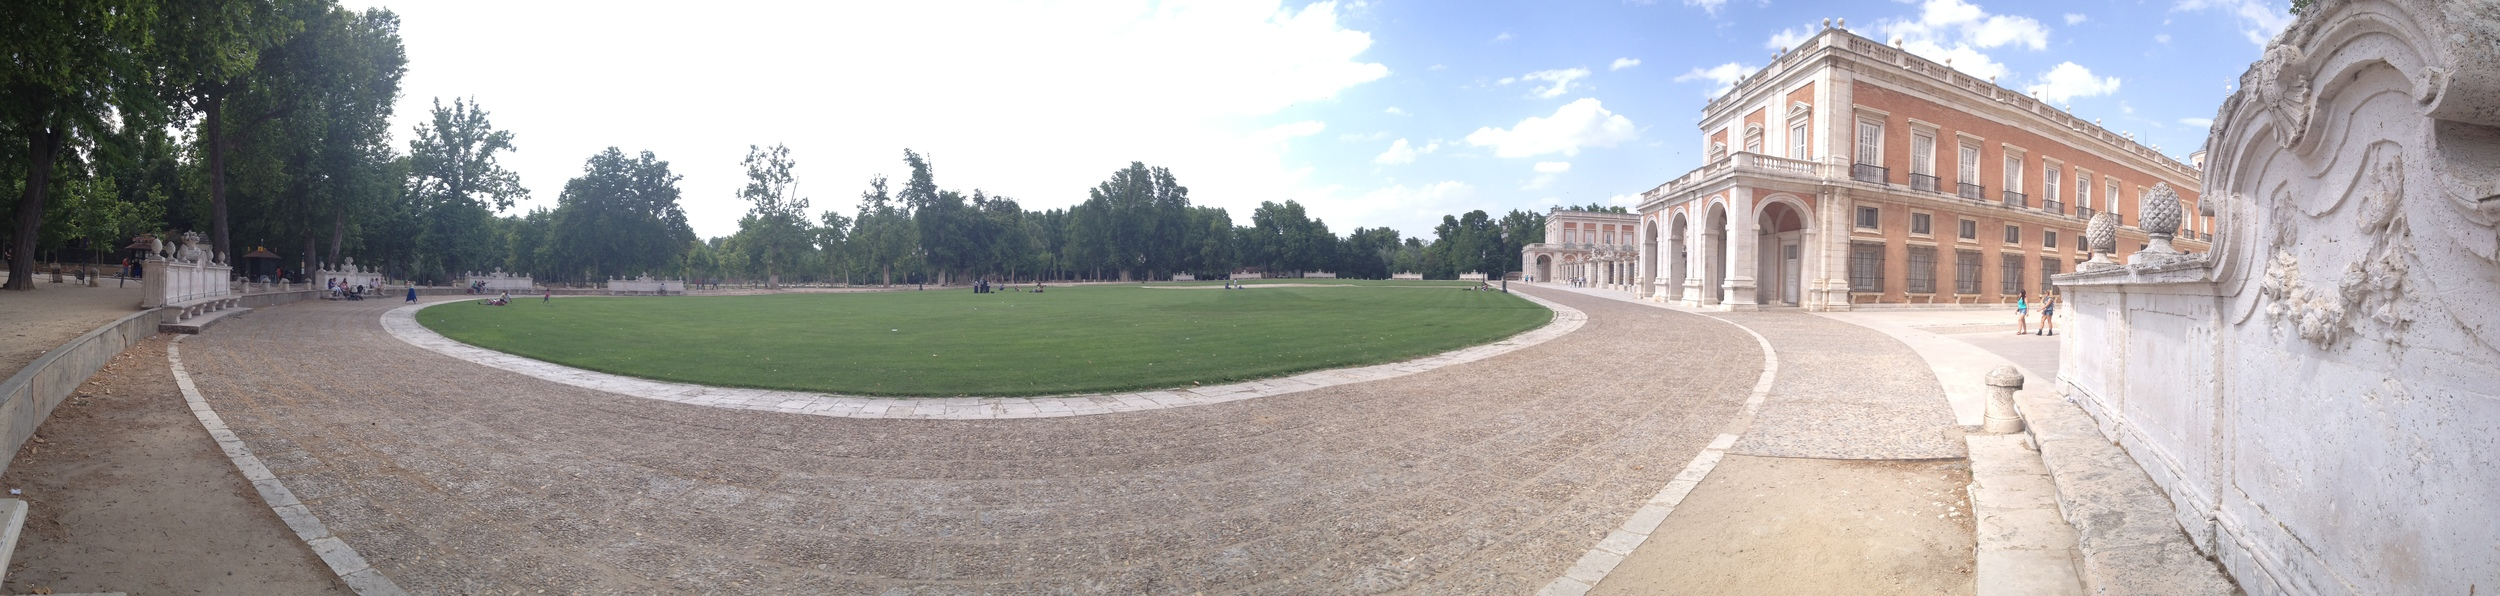 The back courtyard at Aranjuez.